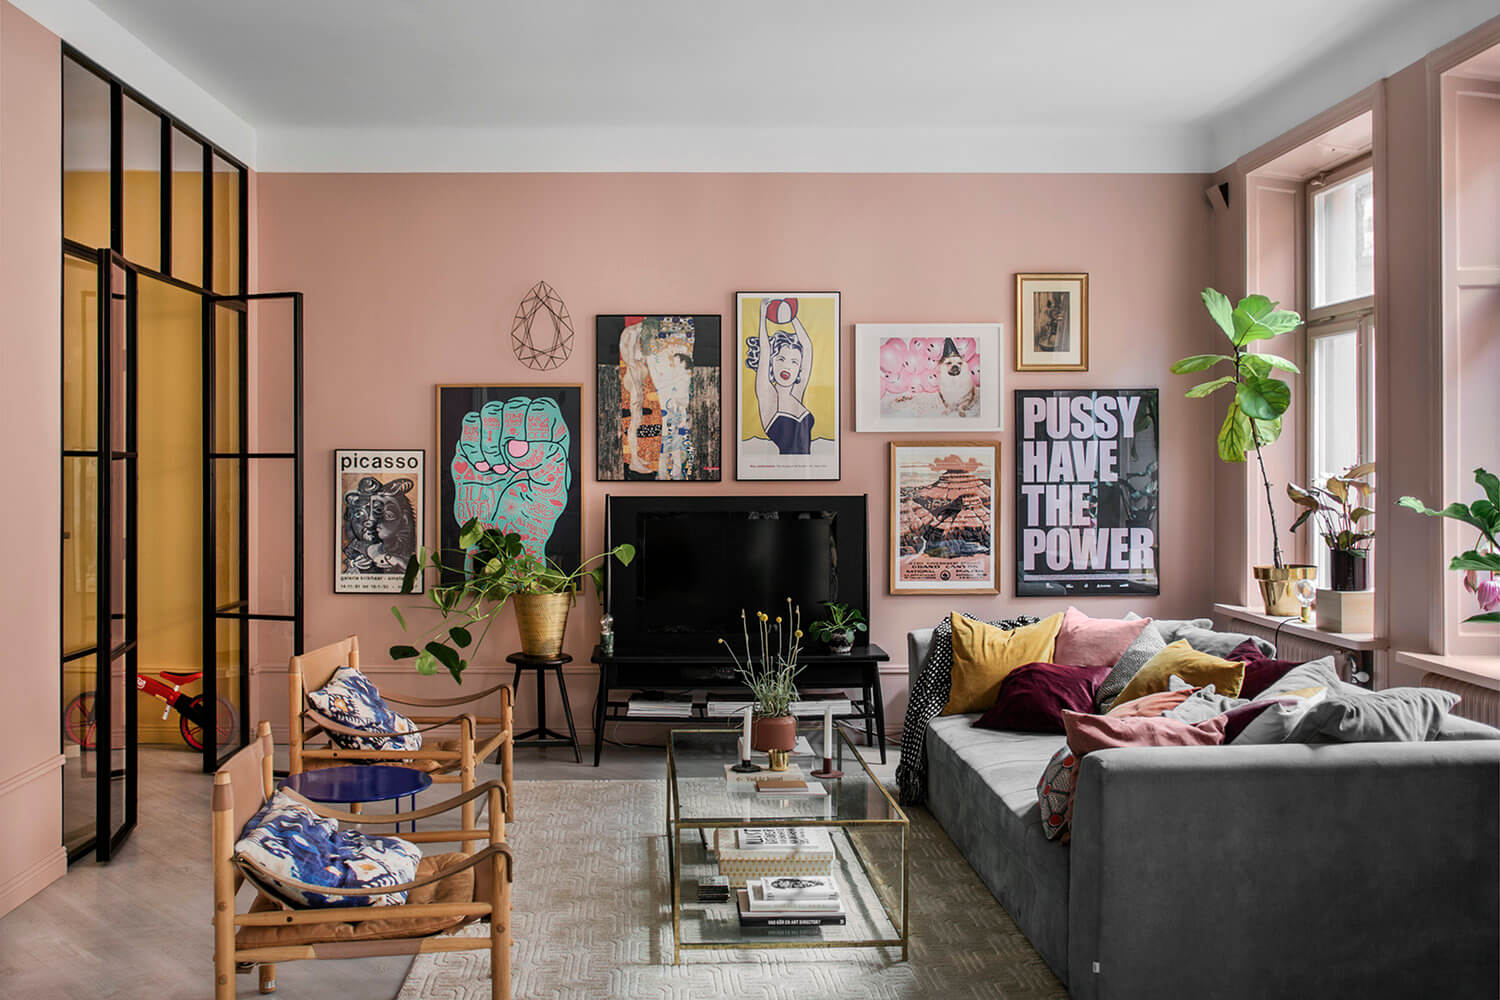 A Color Explosion in a Stylish Scandinavian Home